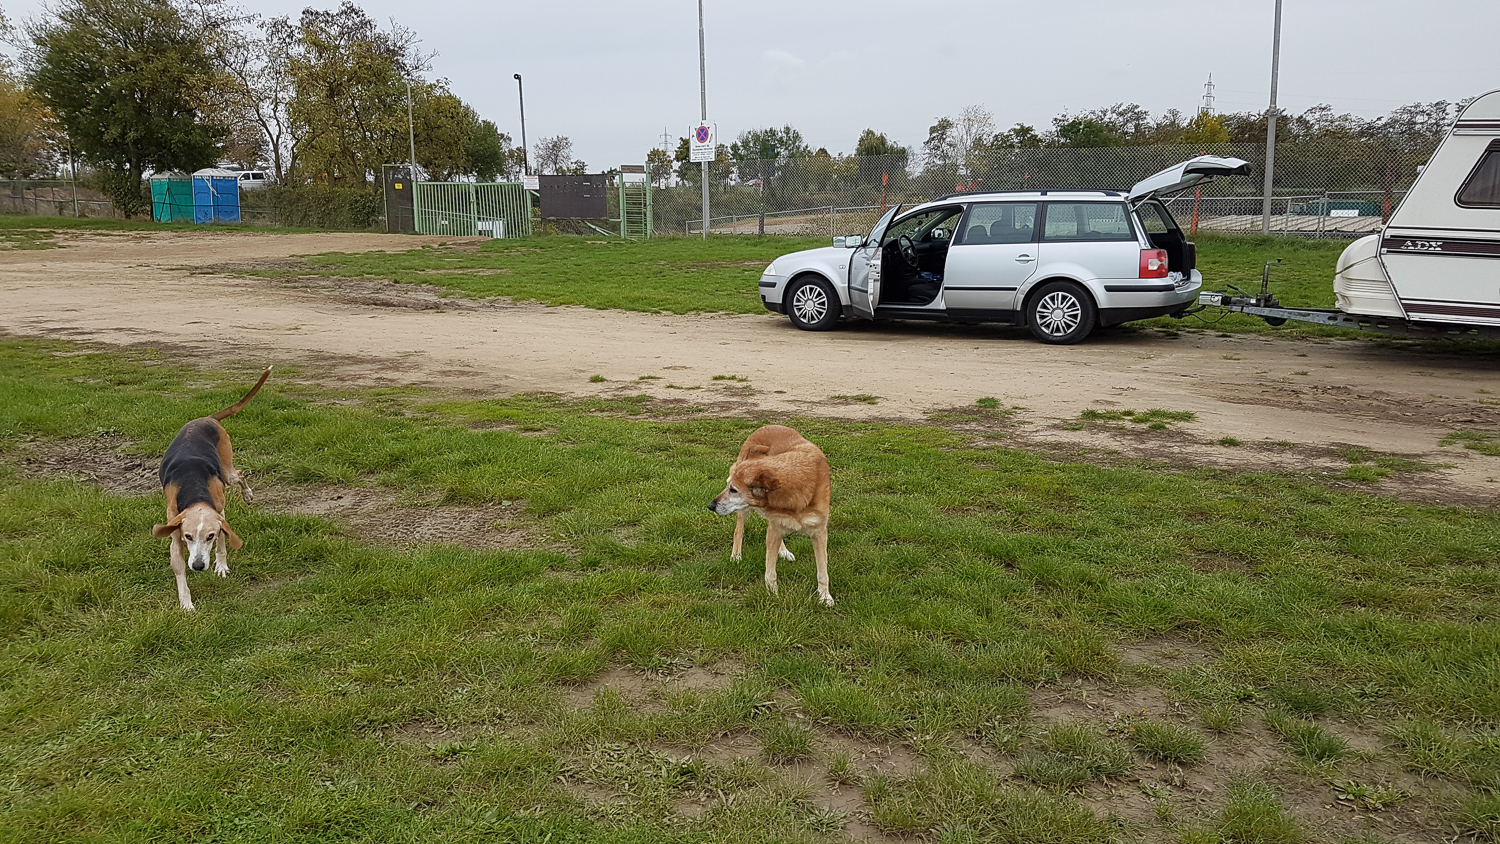 where we park is always a lot of space for the dogs